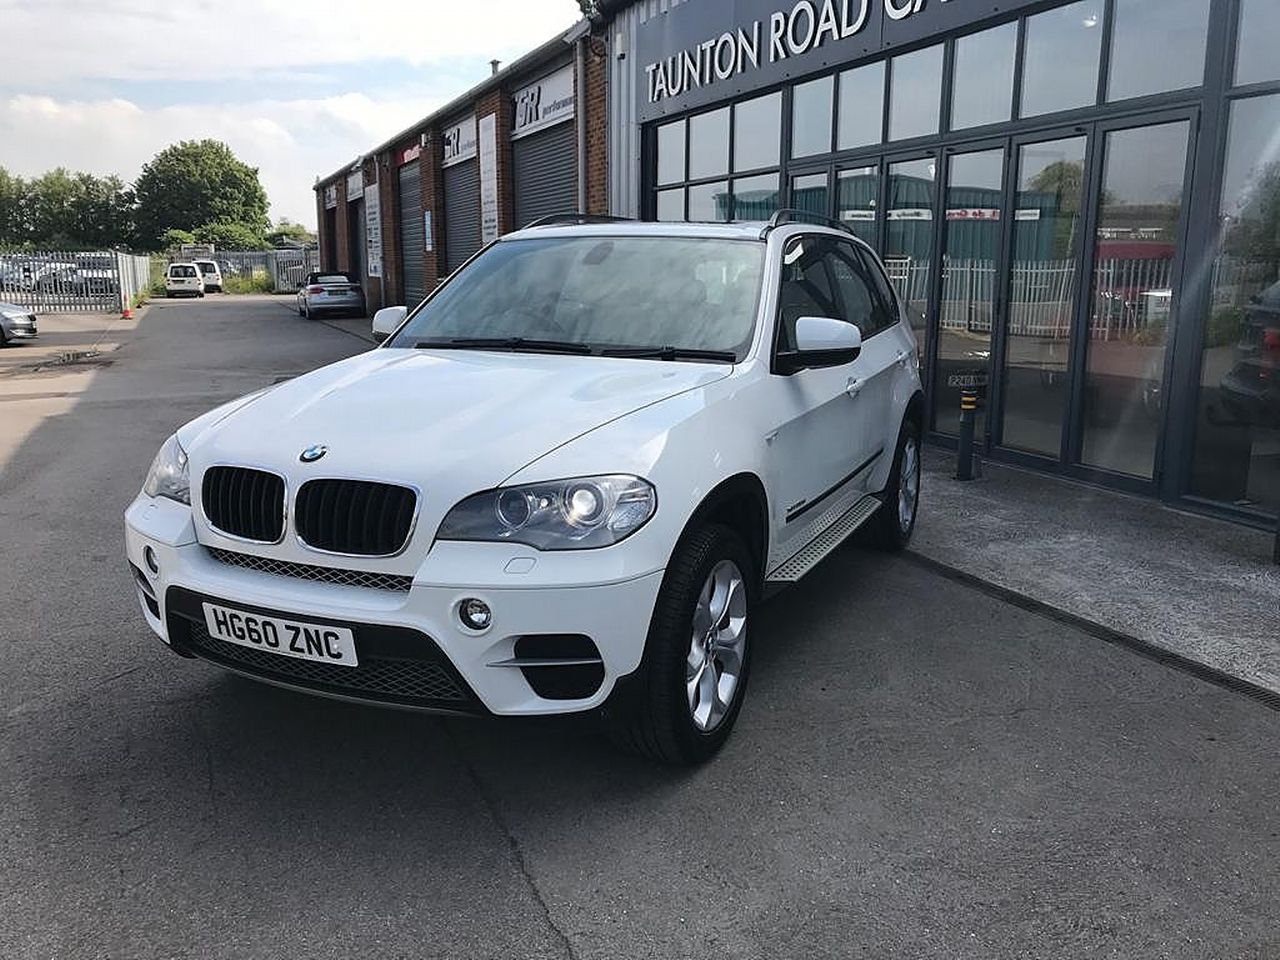 2011 BMW X5 xDrive30d SE - Picture 2 of 12